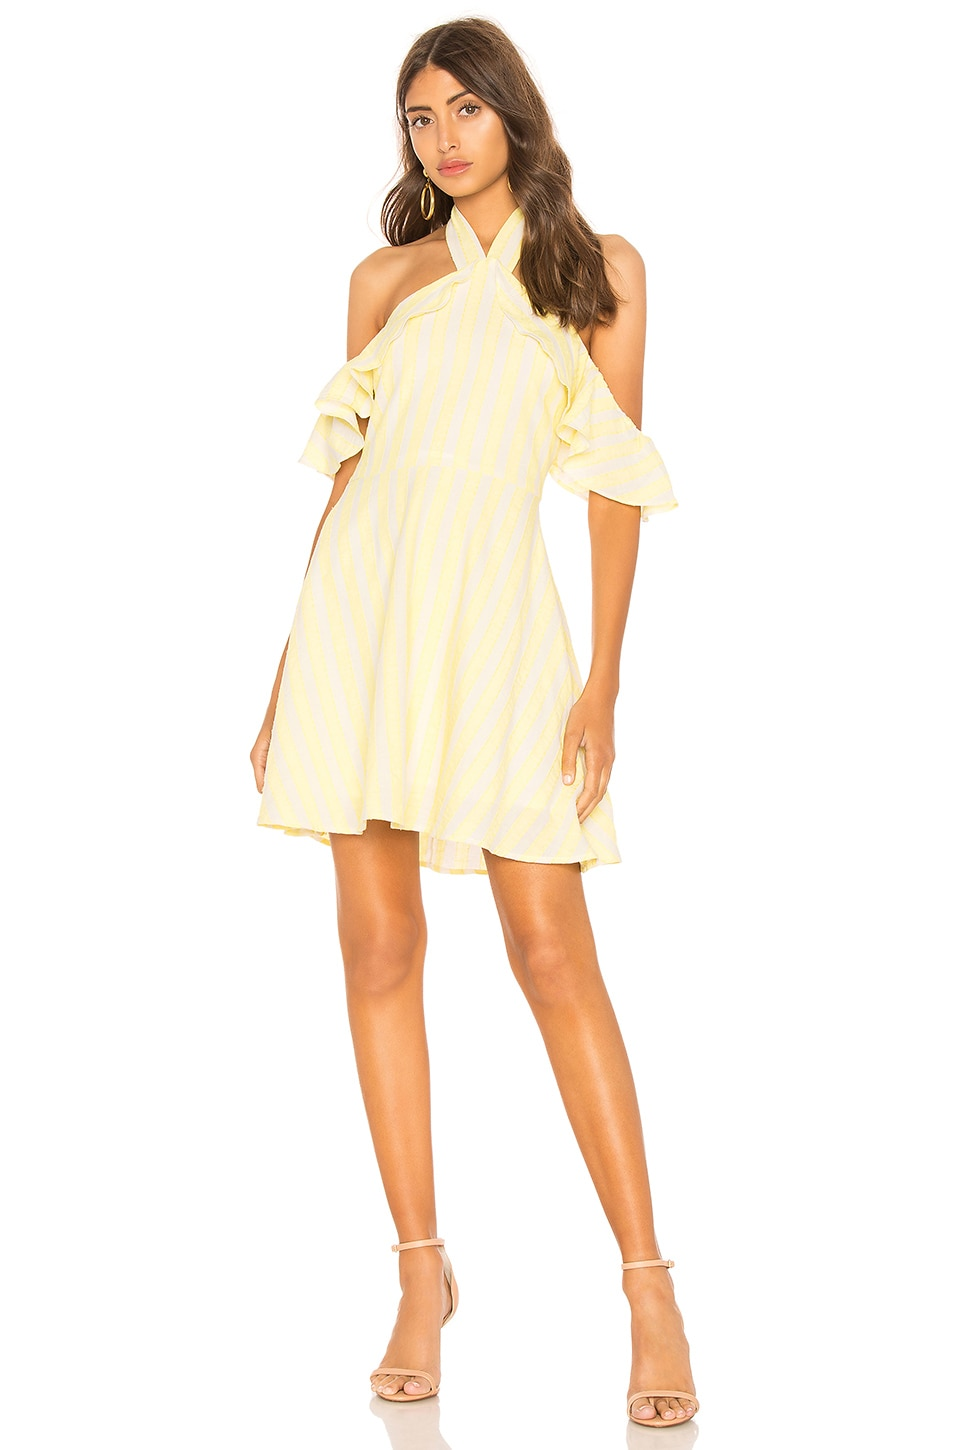 Line & Dot Ali Dress in White & Yellow